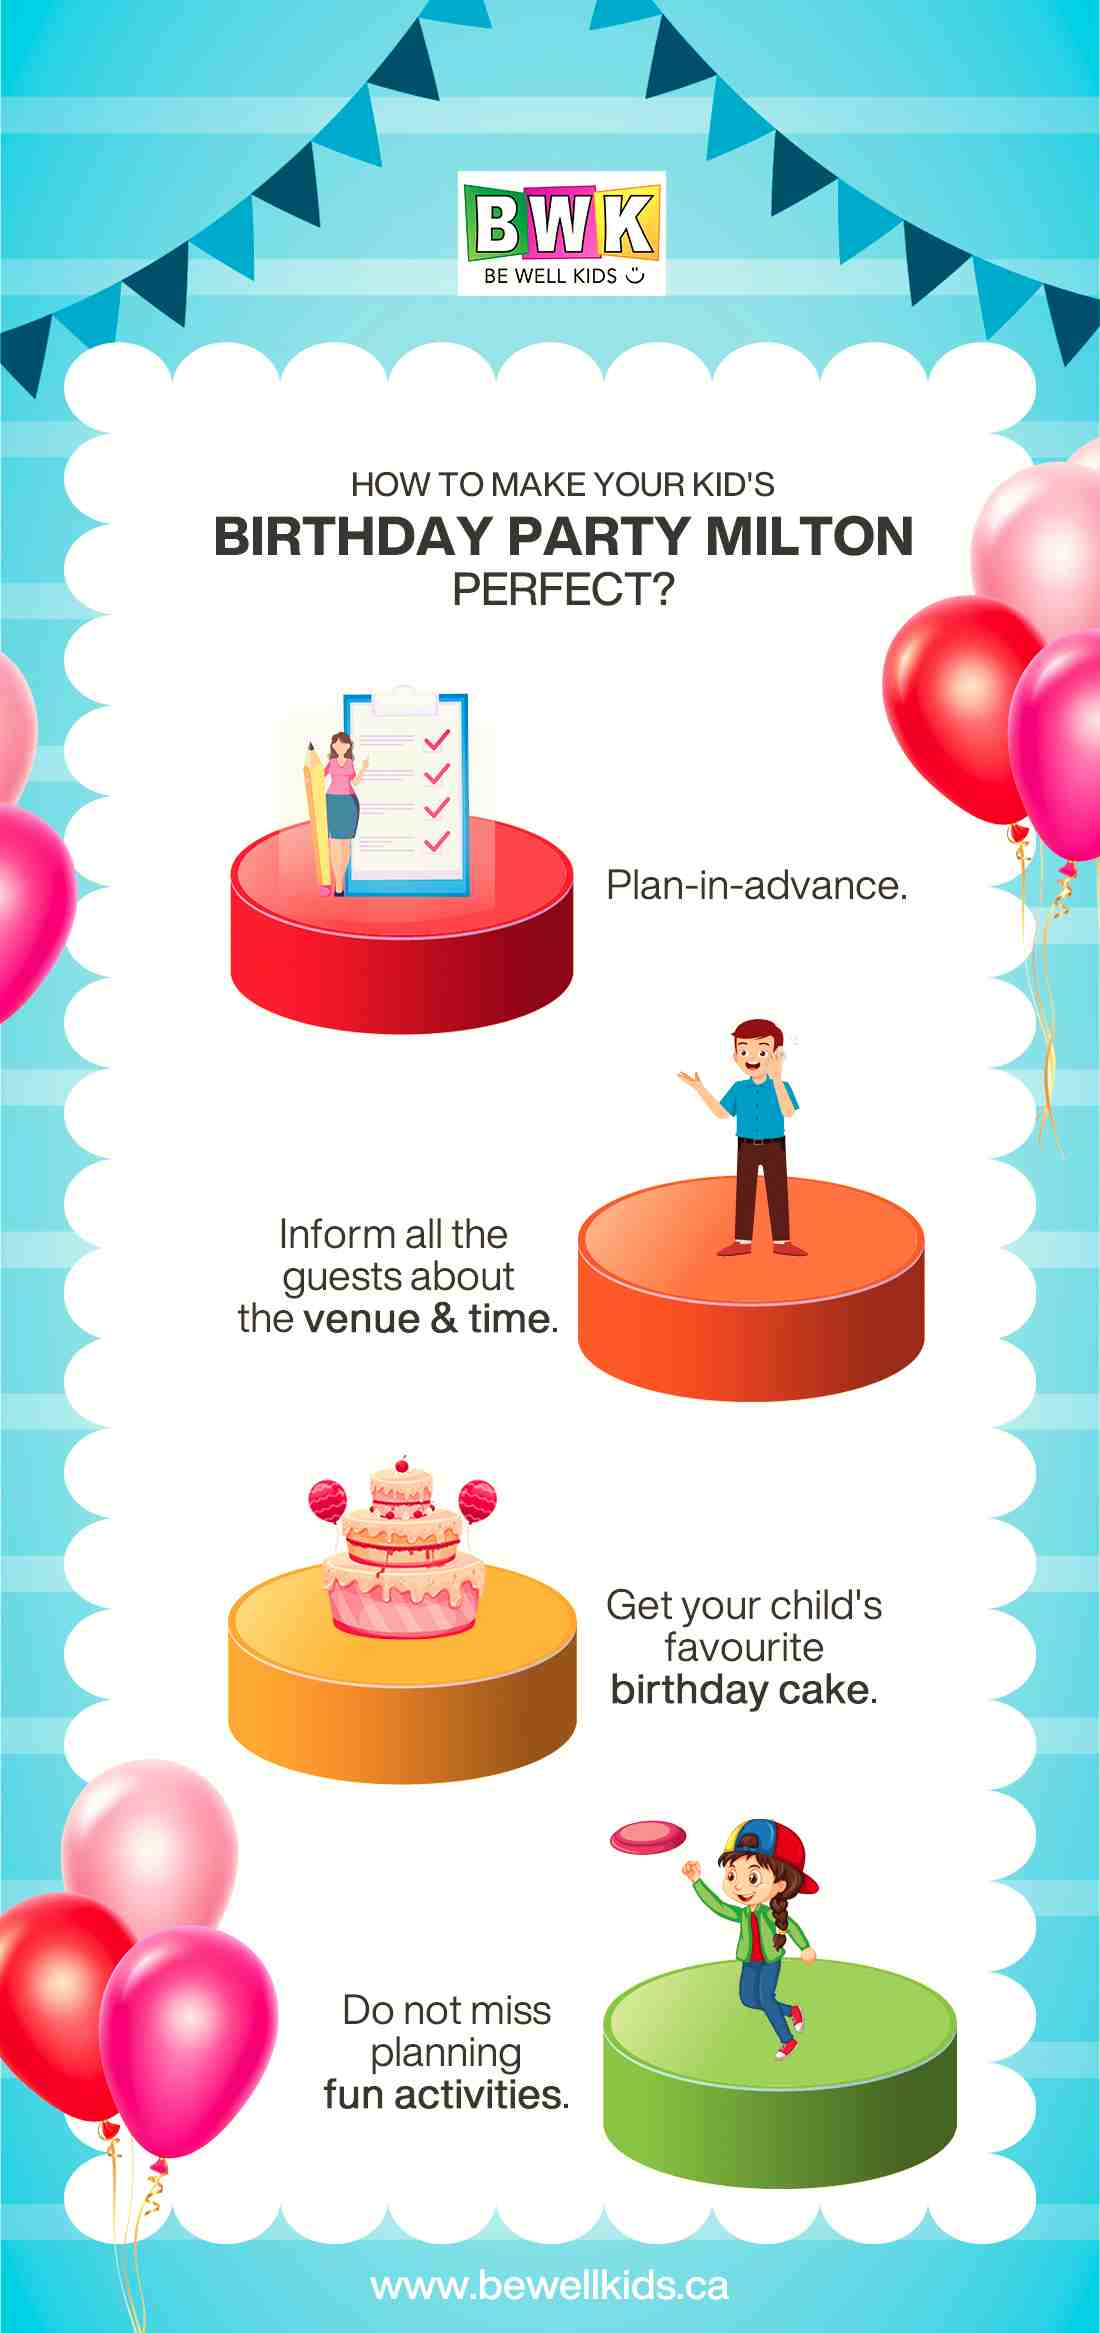 HOW TO MAKE YOUR KID'S BIRTHDAY PARTY MILTON PERFECT?